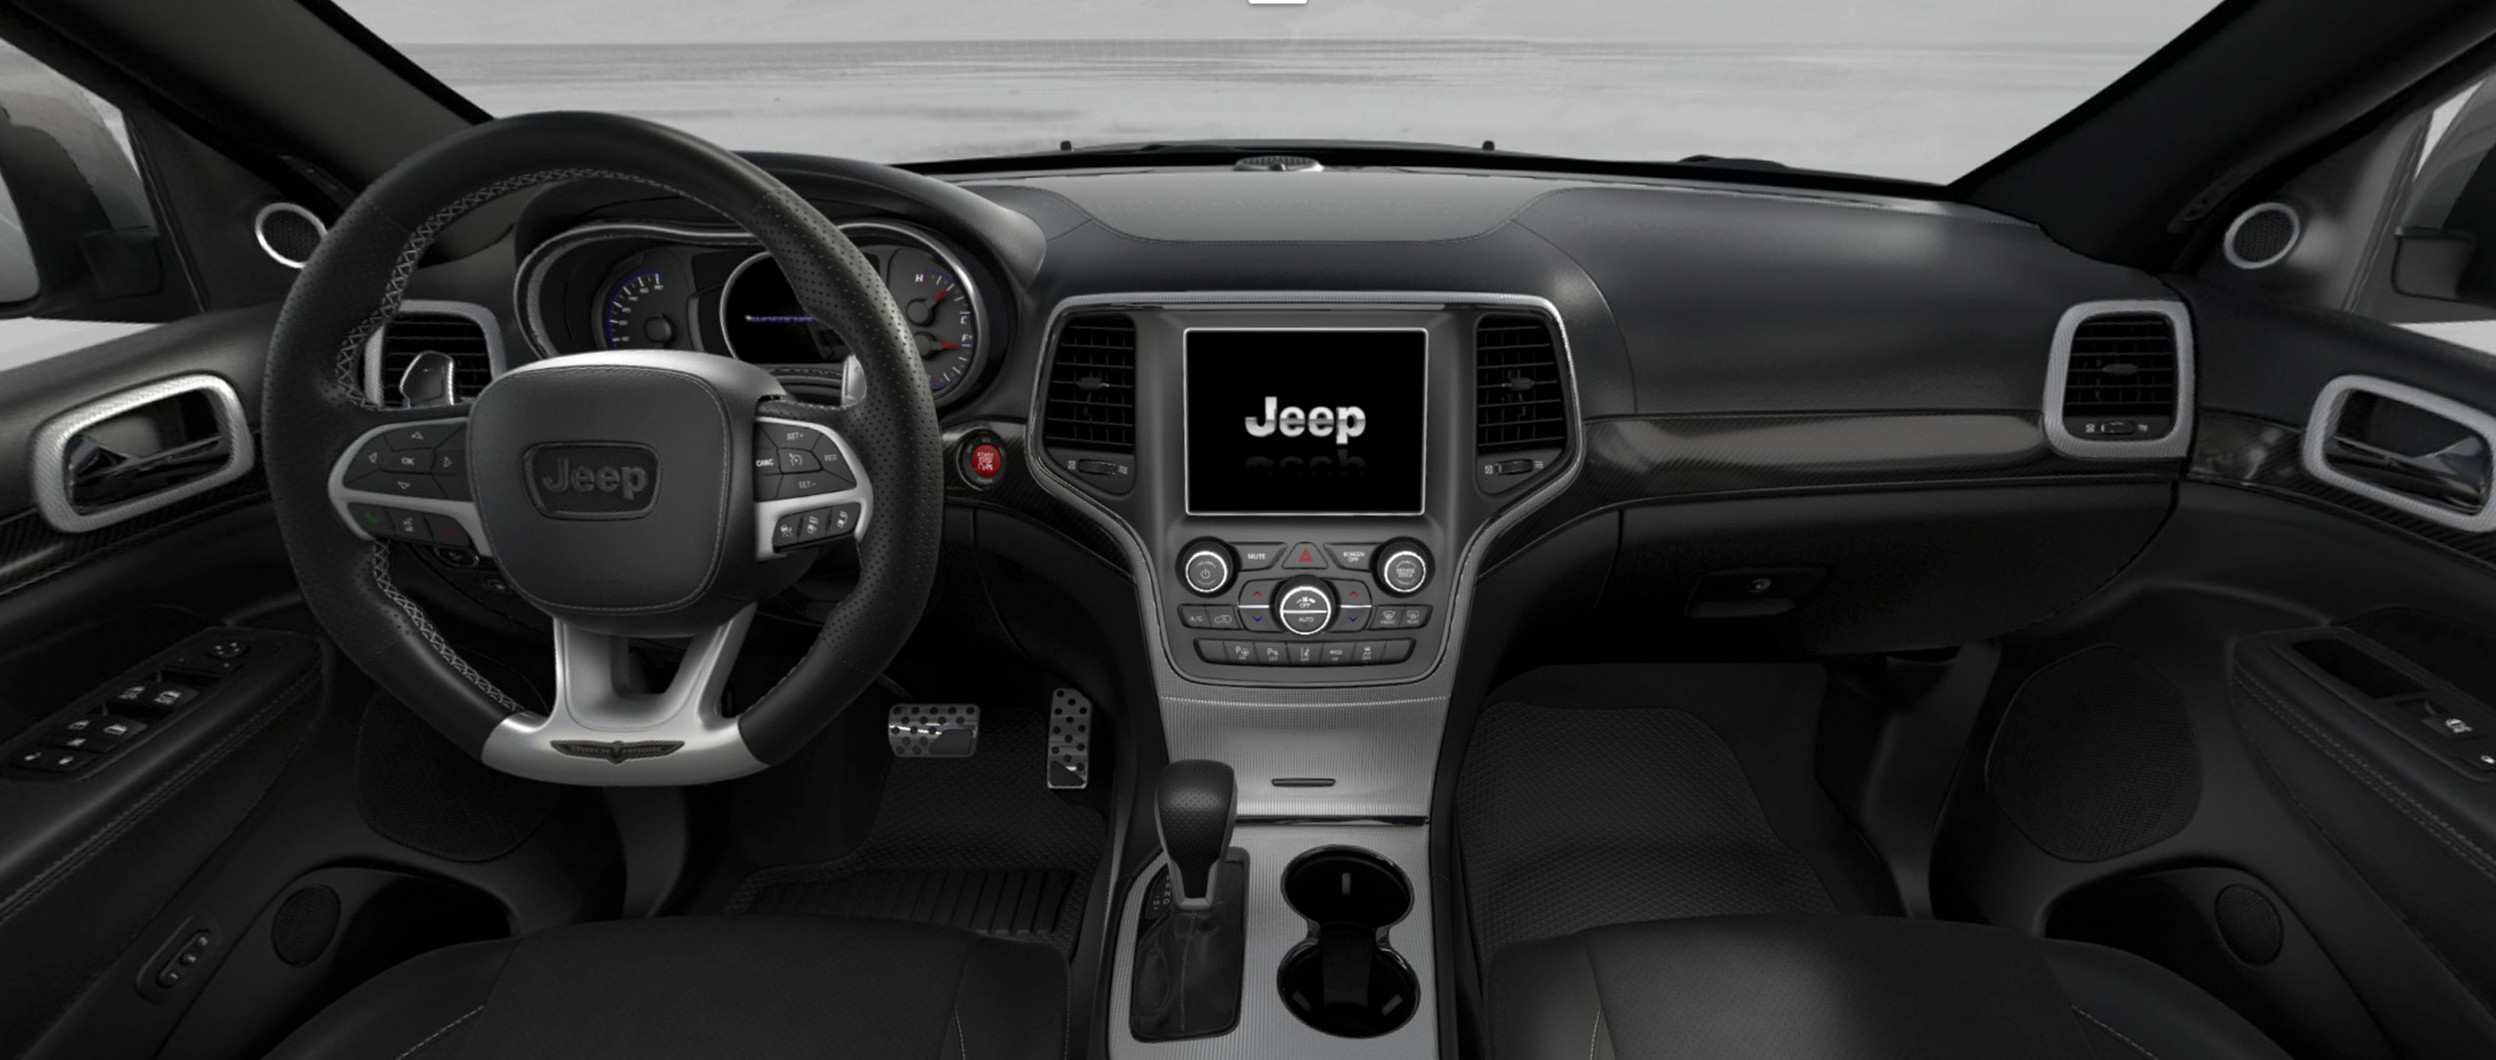 39 Gallery of Jeep Vehicles 2019 Interior Interior by Jeep Vehicles 2019 Interior